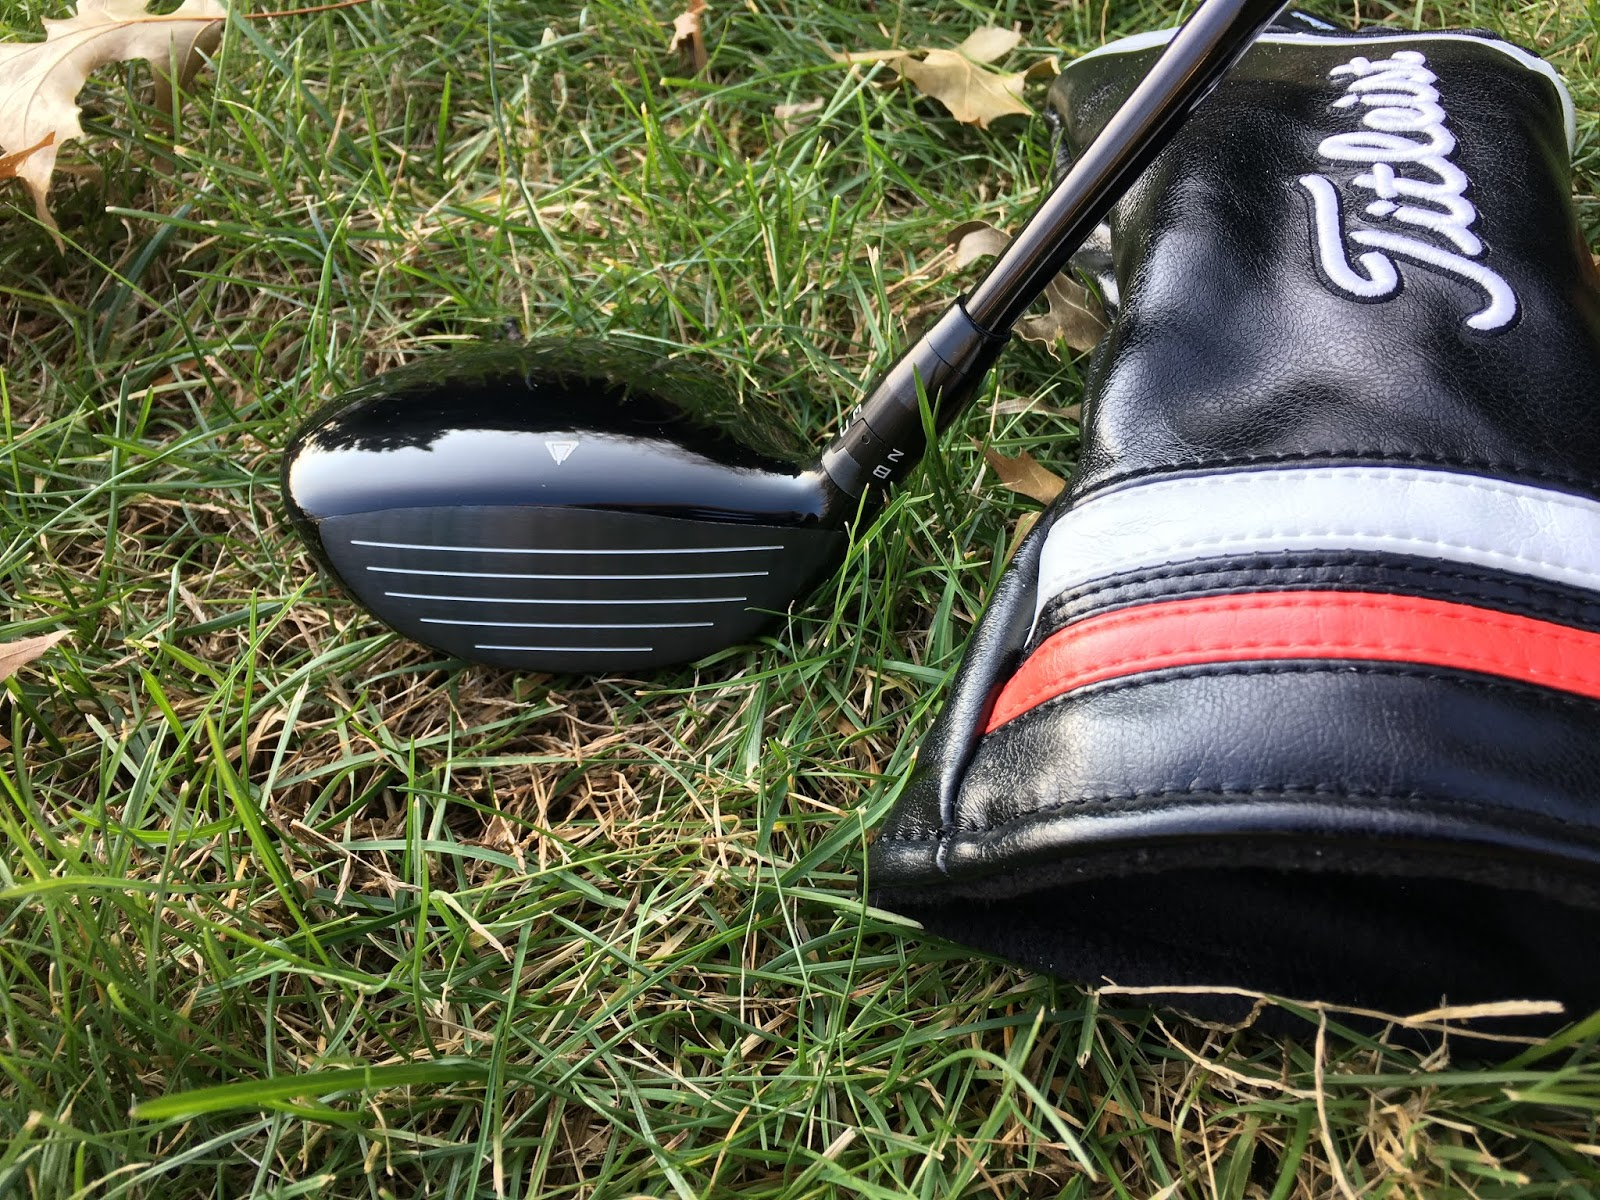 The #1 Writer in Golf: Titleist TS2 Fairway Wood Review